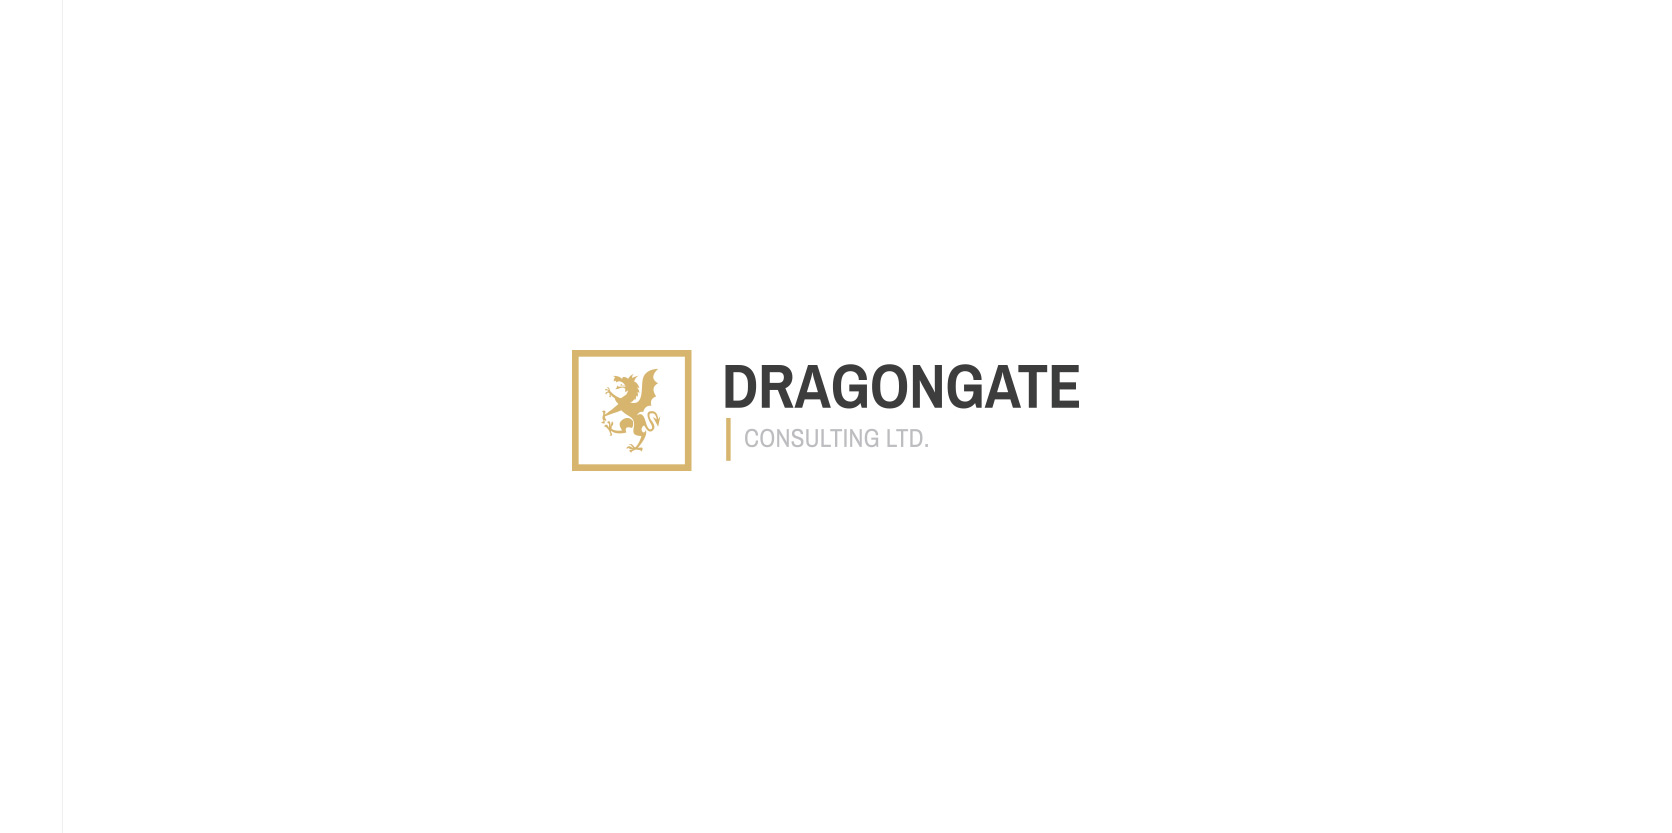 KOS Design - Dragongate